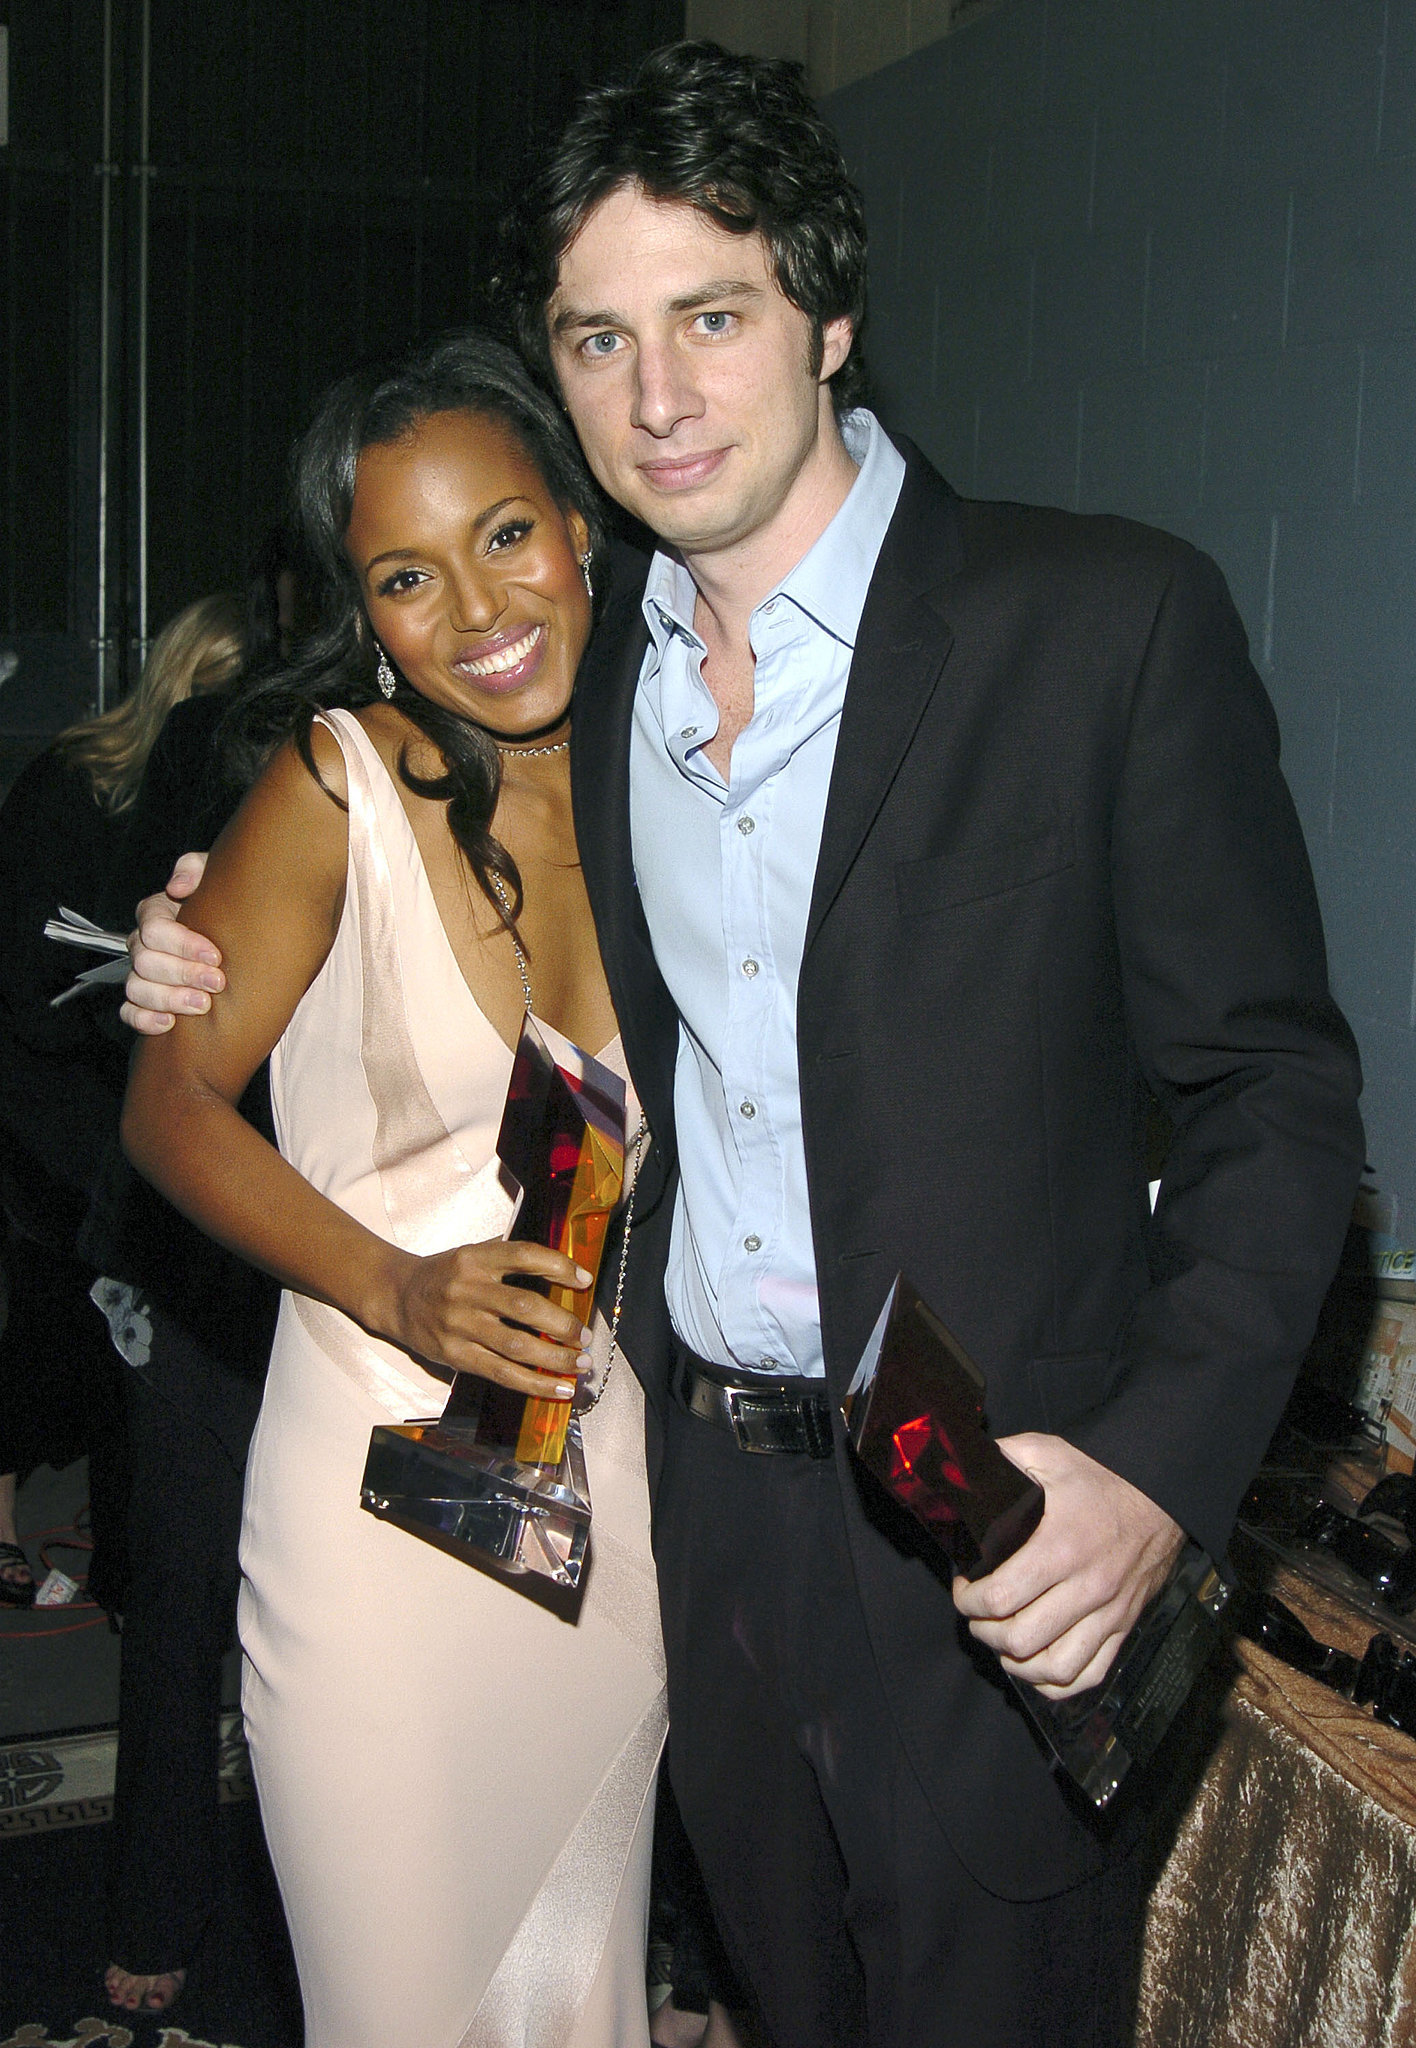 She Gets Cozy With Zach Braff and Their Awards